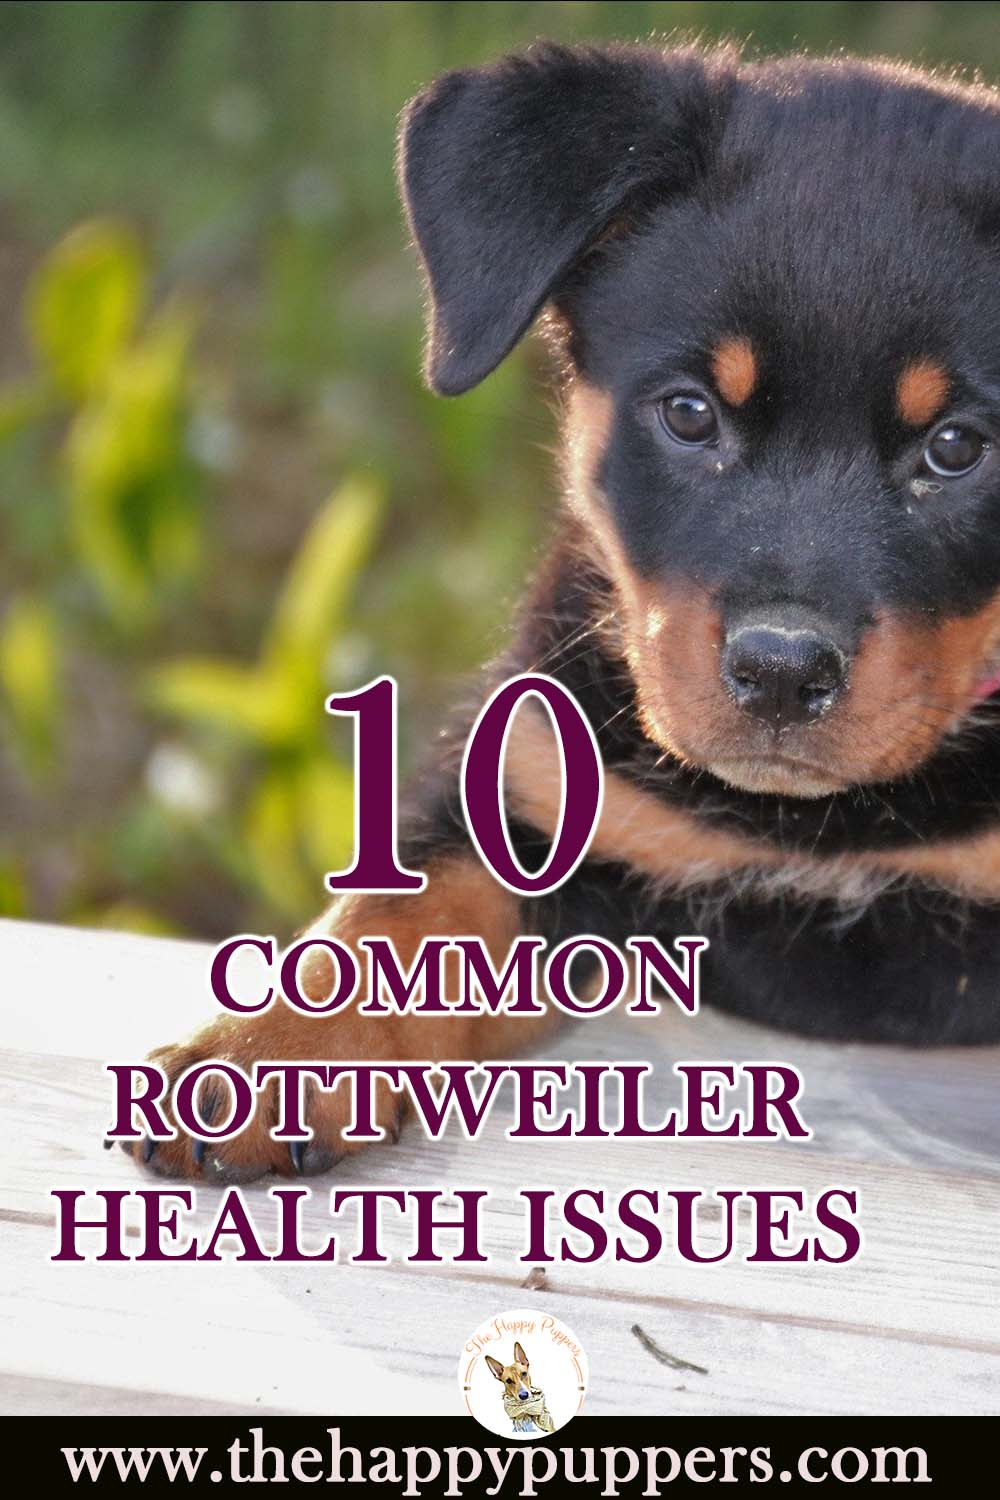 Rottweiler health issues